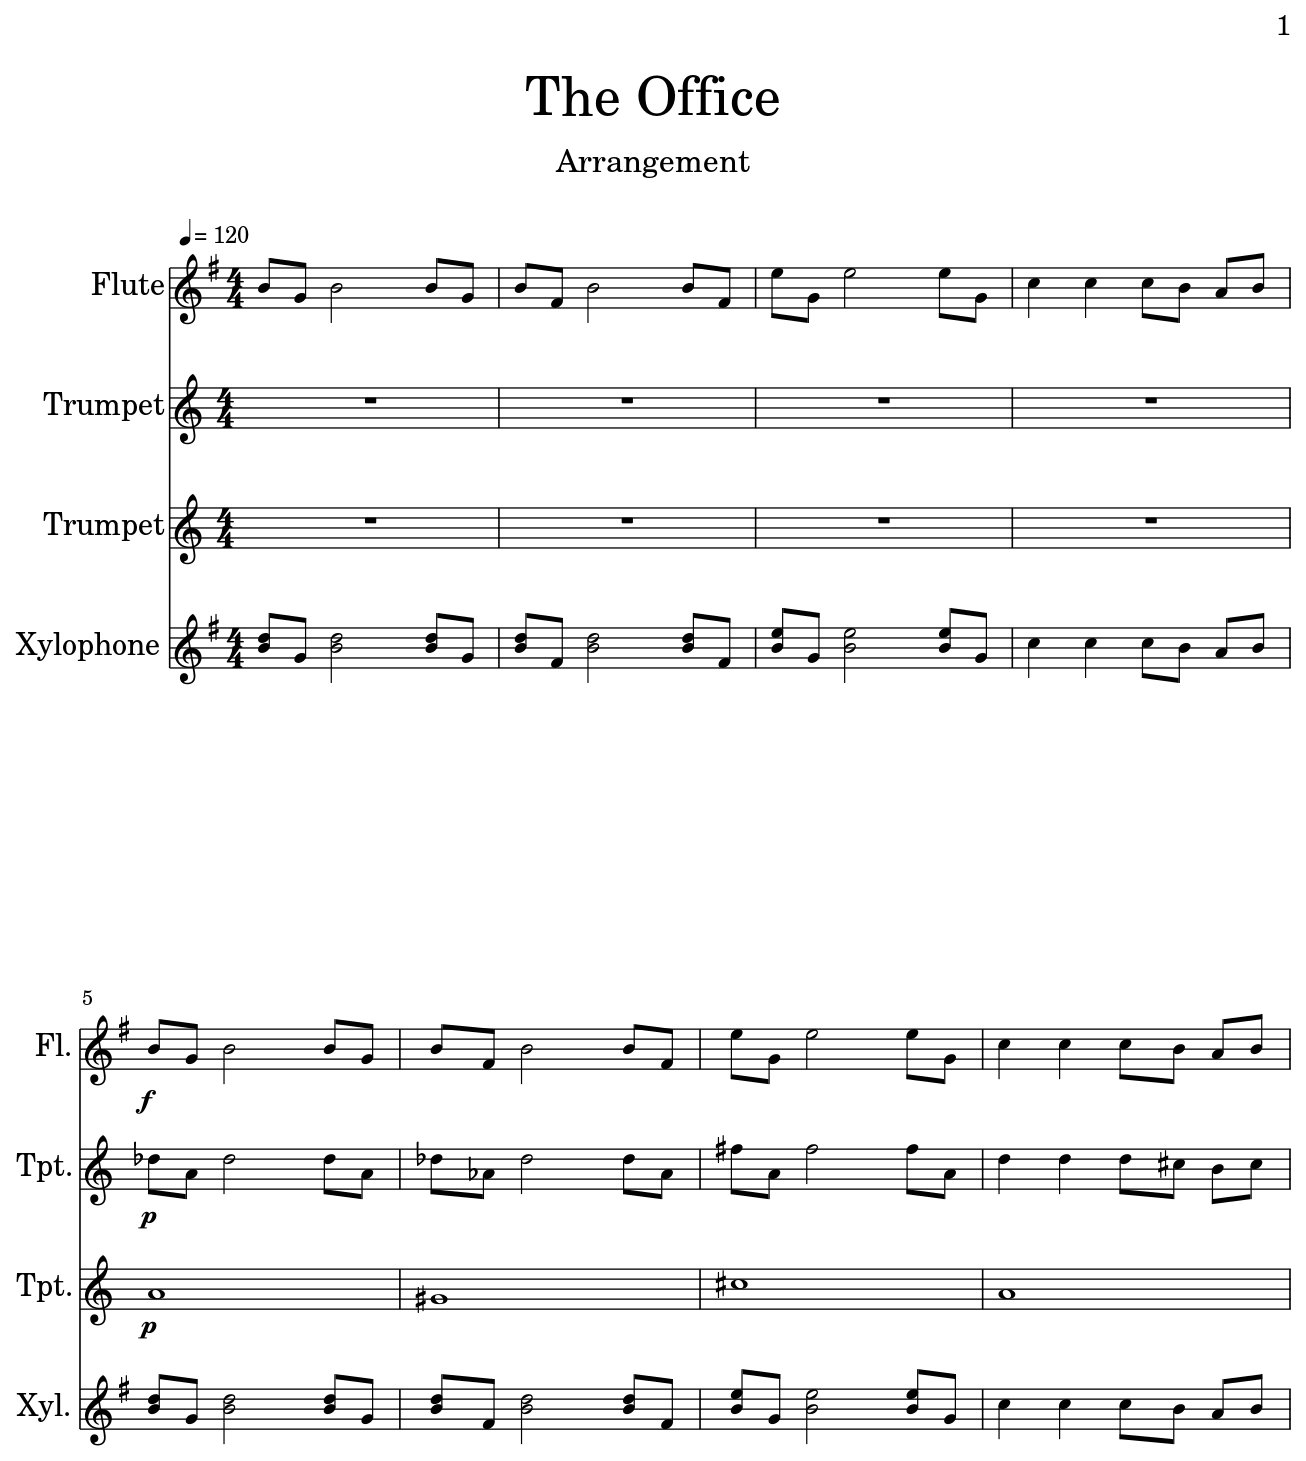 the office sheet music for flute trumpet xylophone